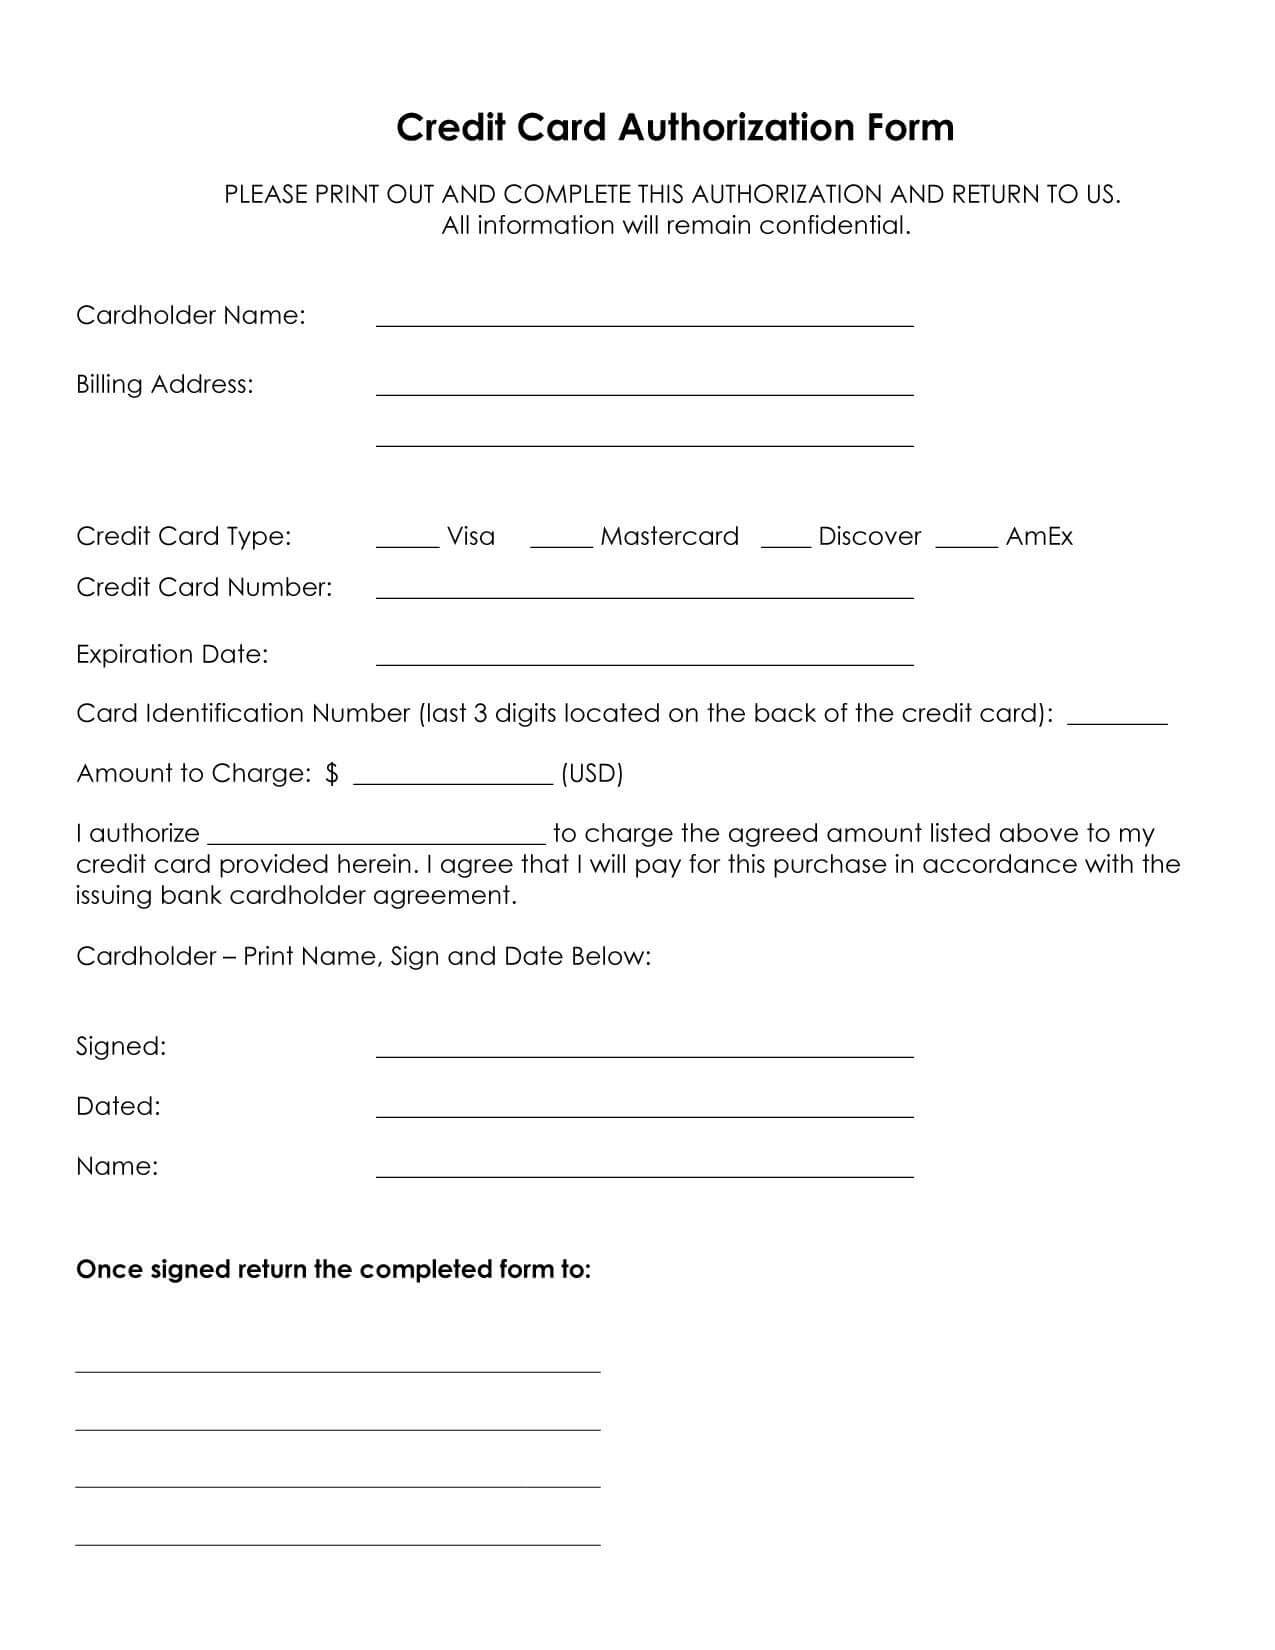 Credit Card Authorization Form Template In 2020 | Credit Throughout Credit Card Authorization Form Template Word